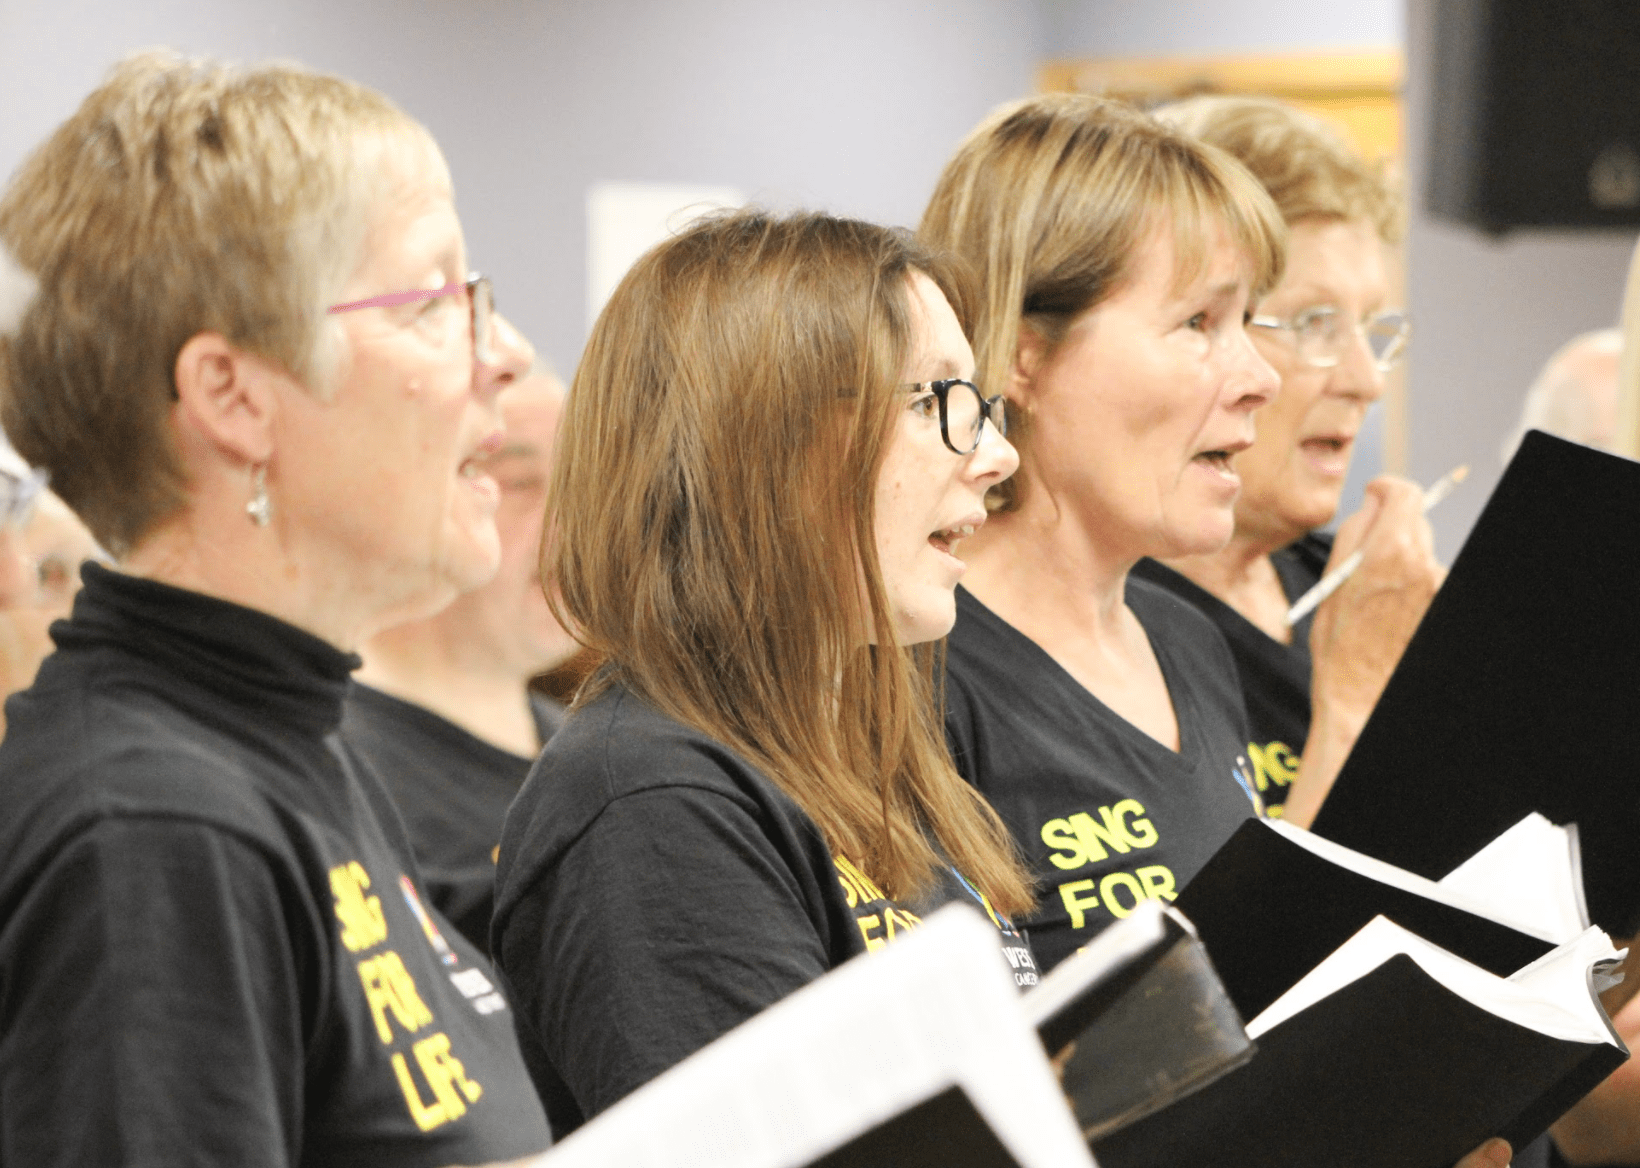 Sing for life Choir